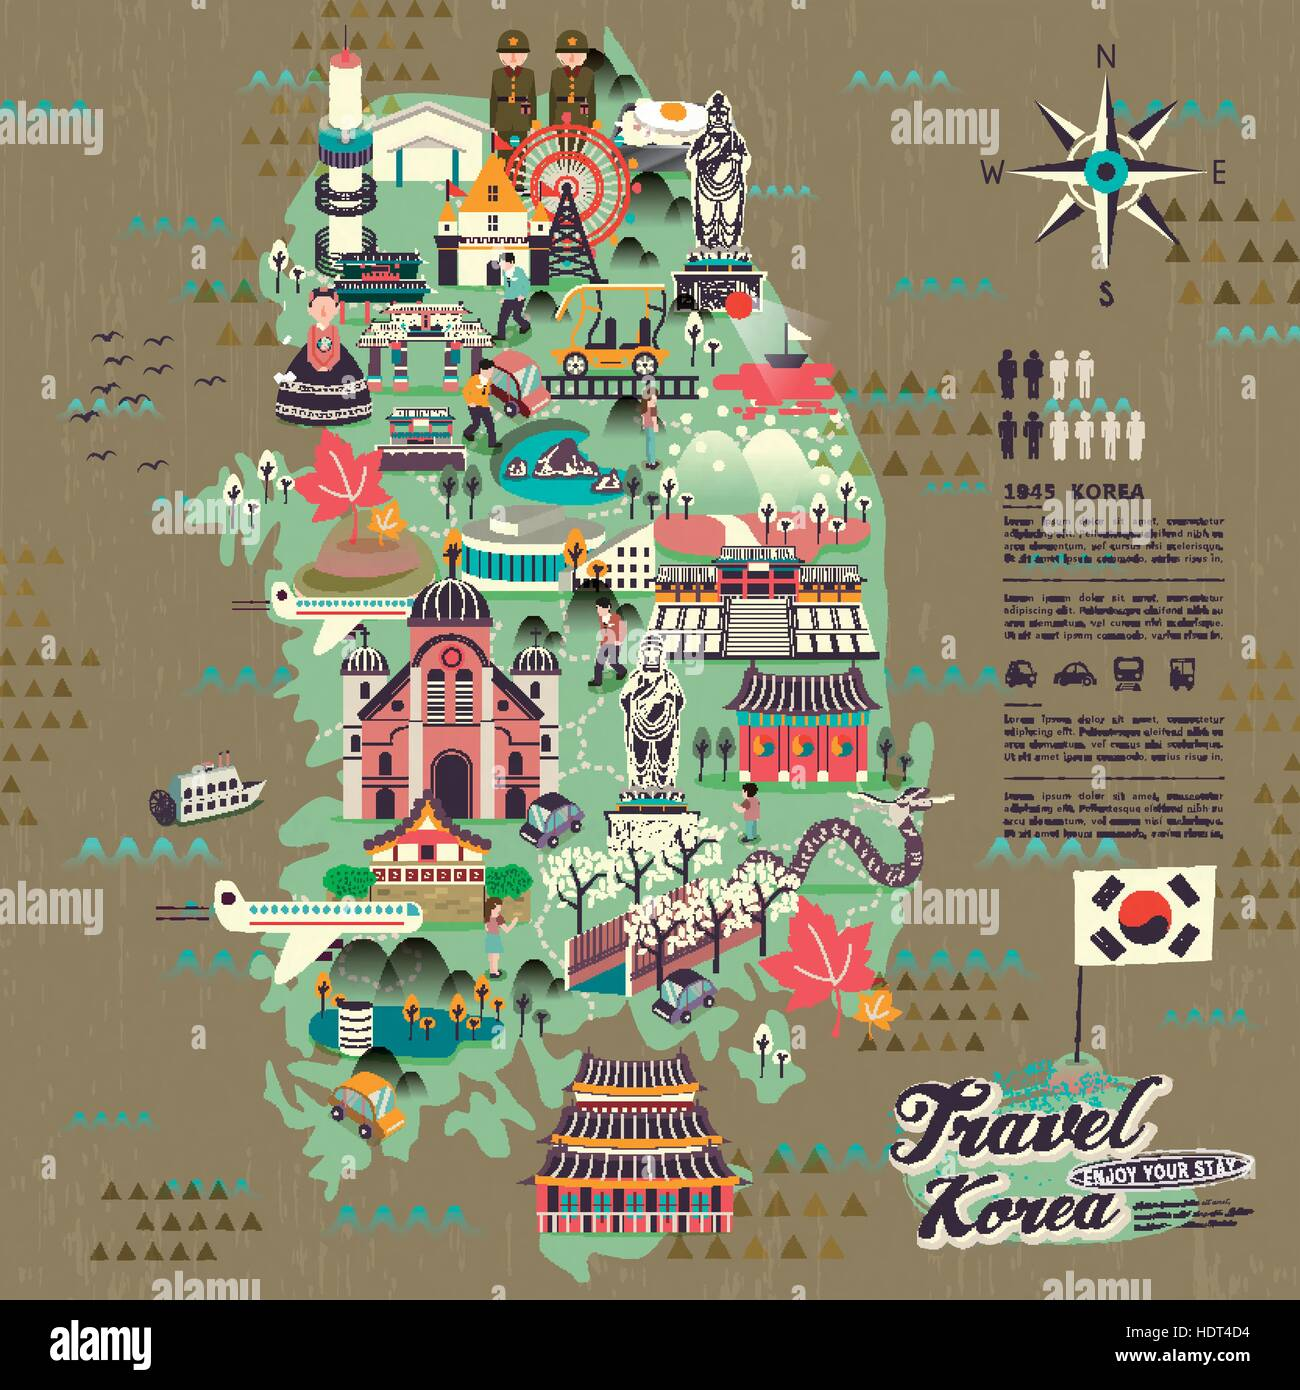 wonderful South Korea travel map with attractions design Stock